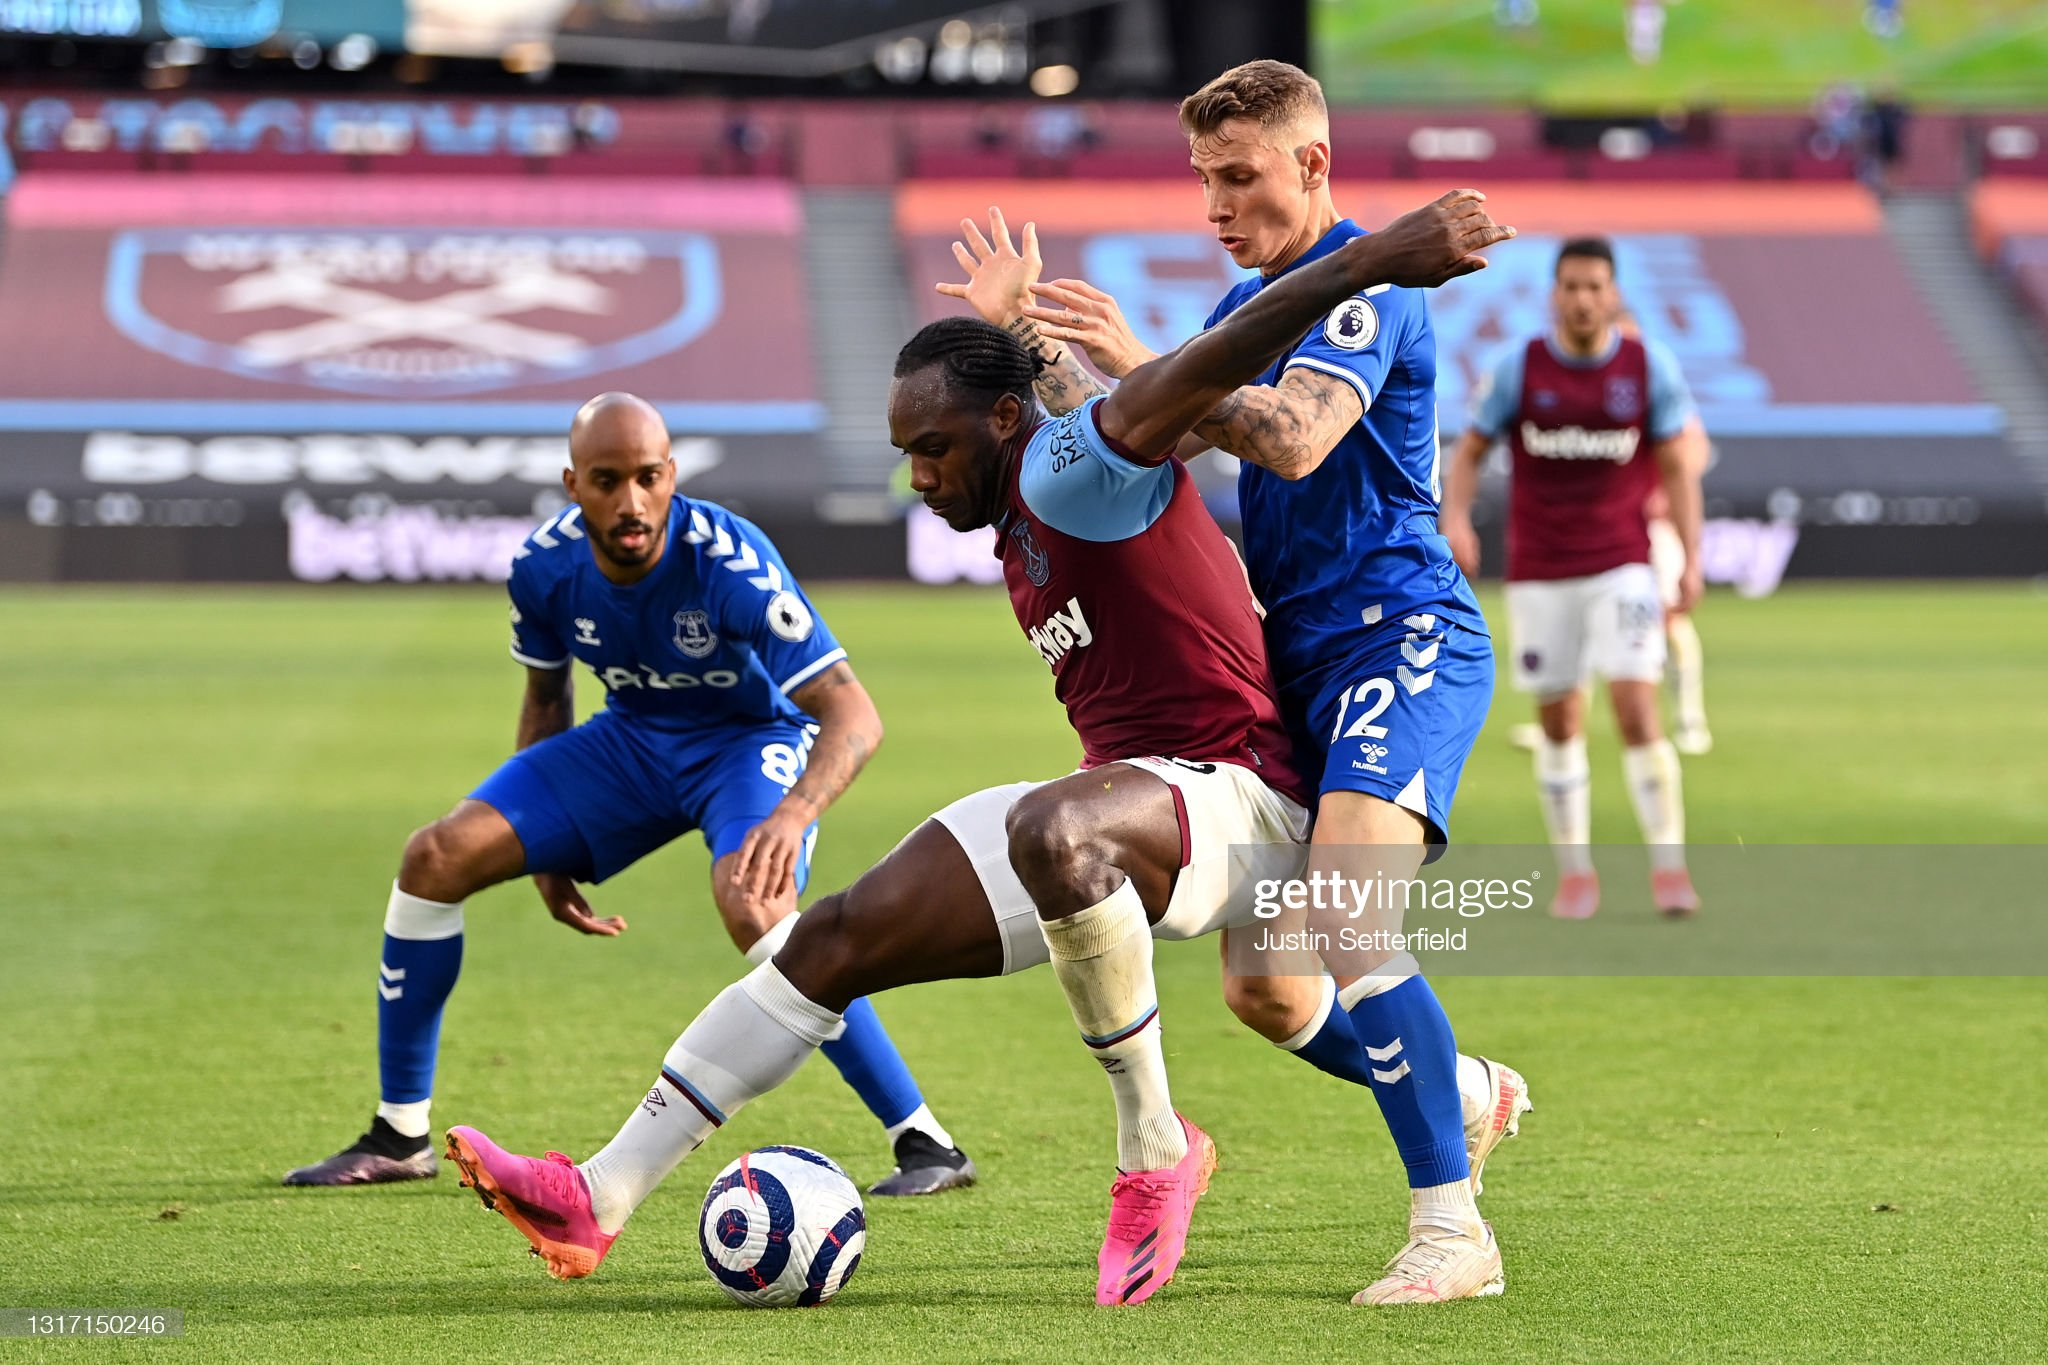 Everton vs West Ham Preview, prediction and odds